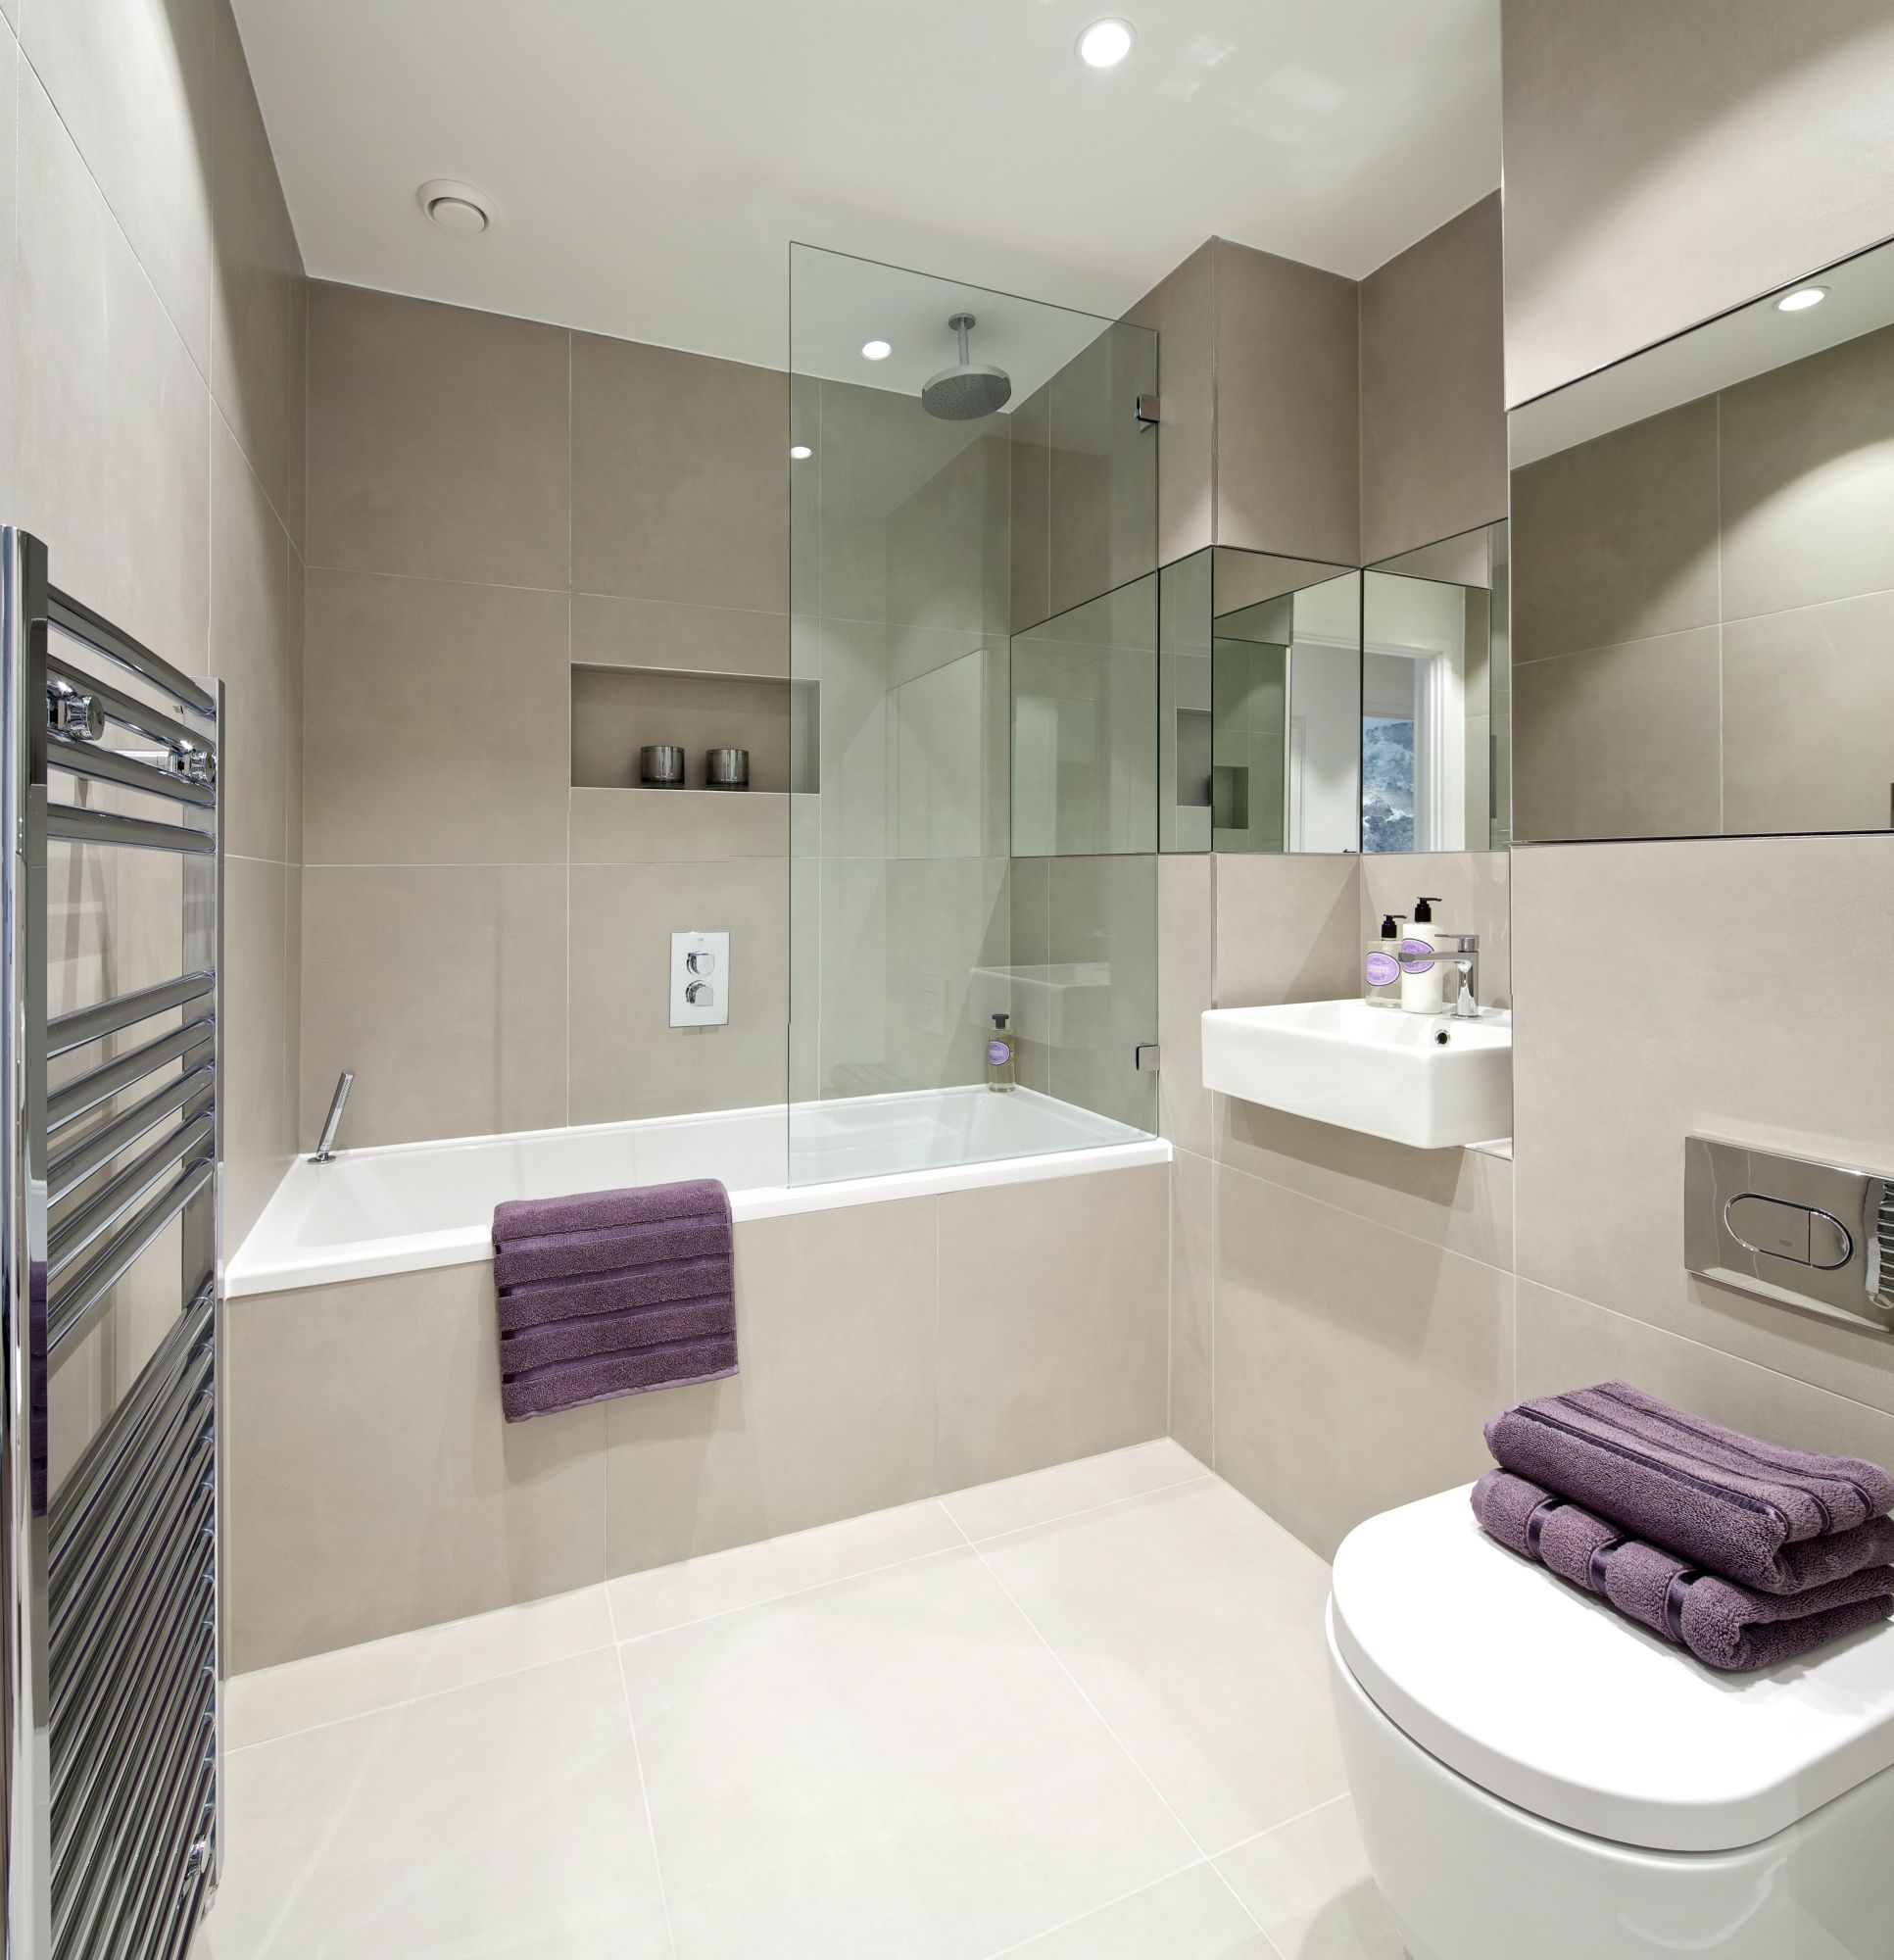 Stunning Home Interiors Bathroom Another Stunning Show Home - Purple bath towels for small bathroom ideas